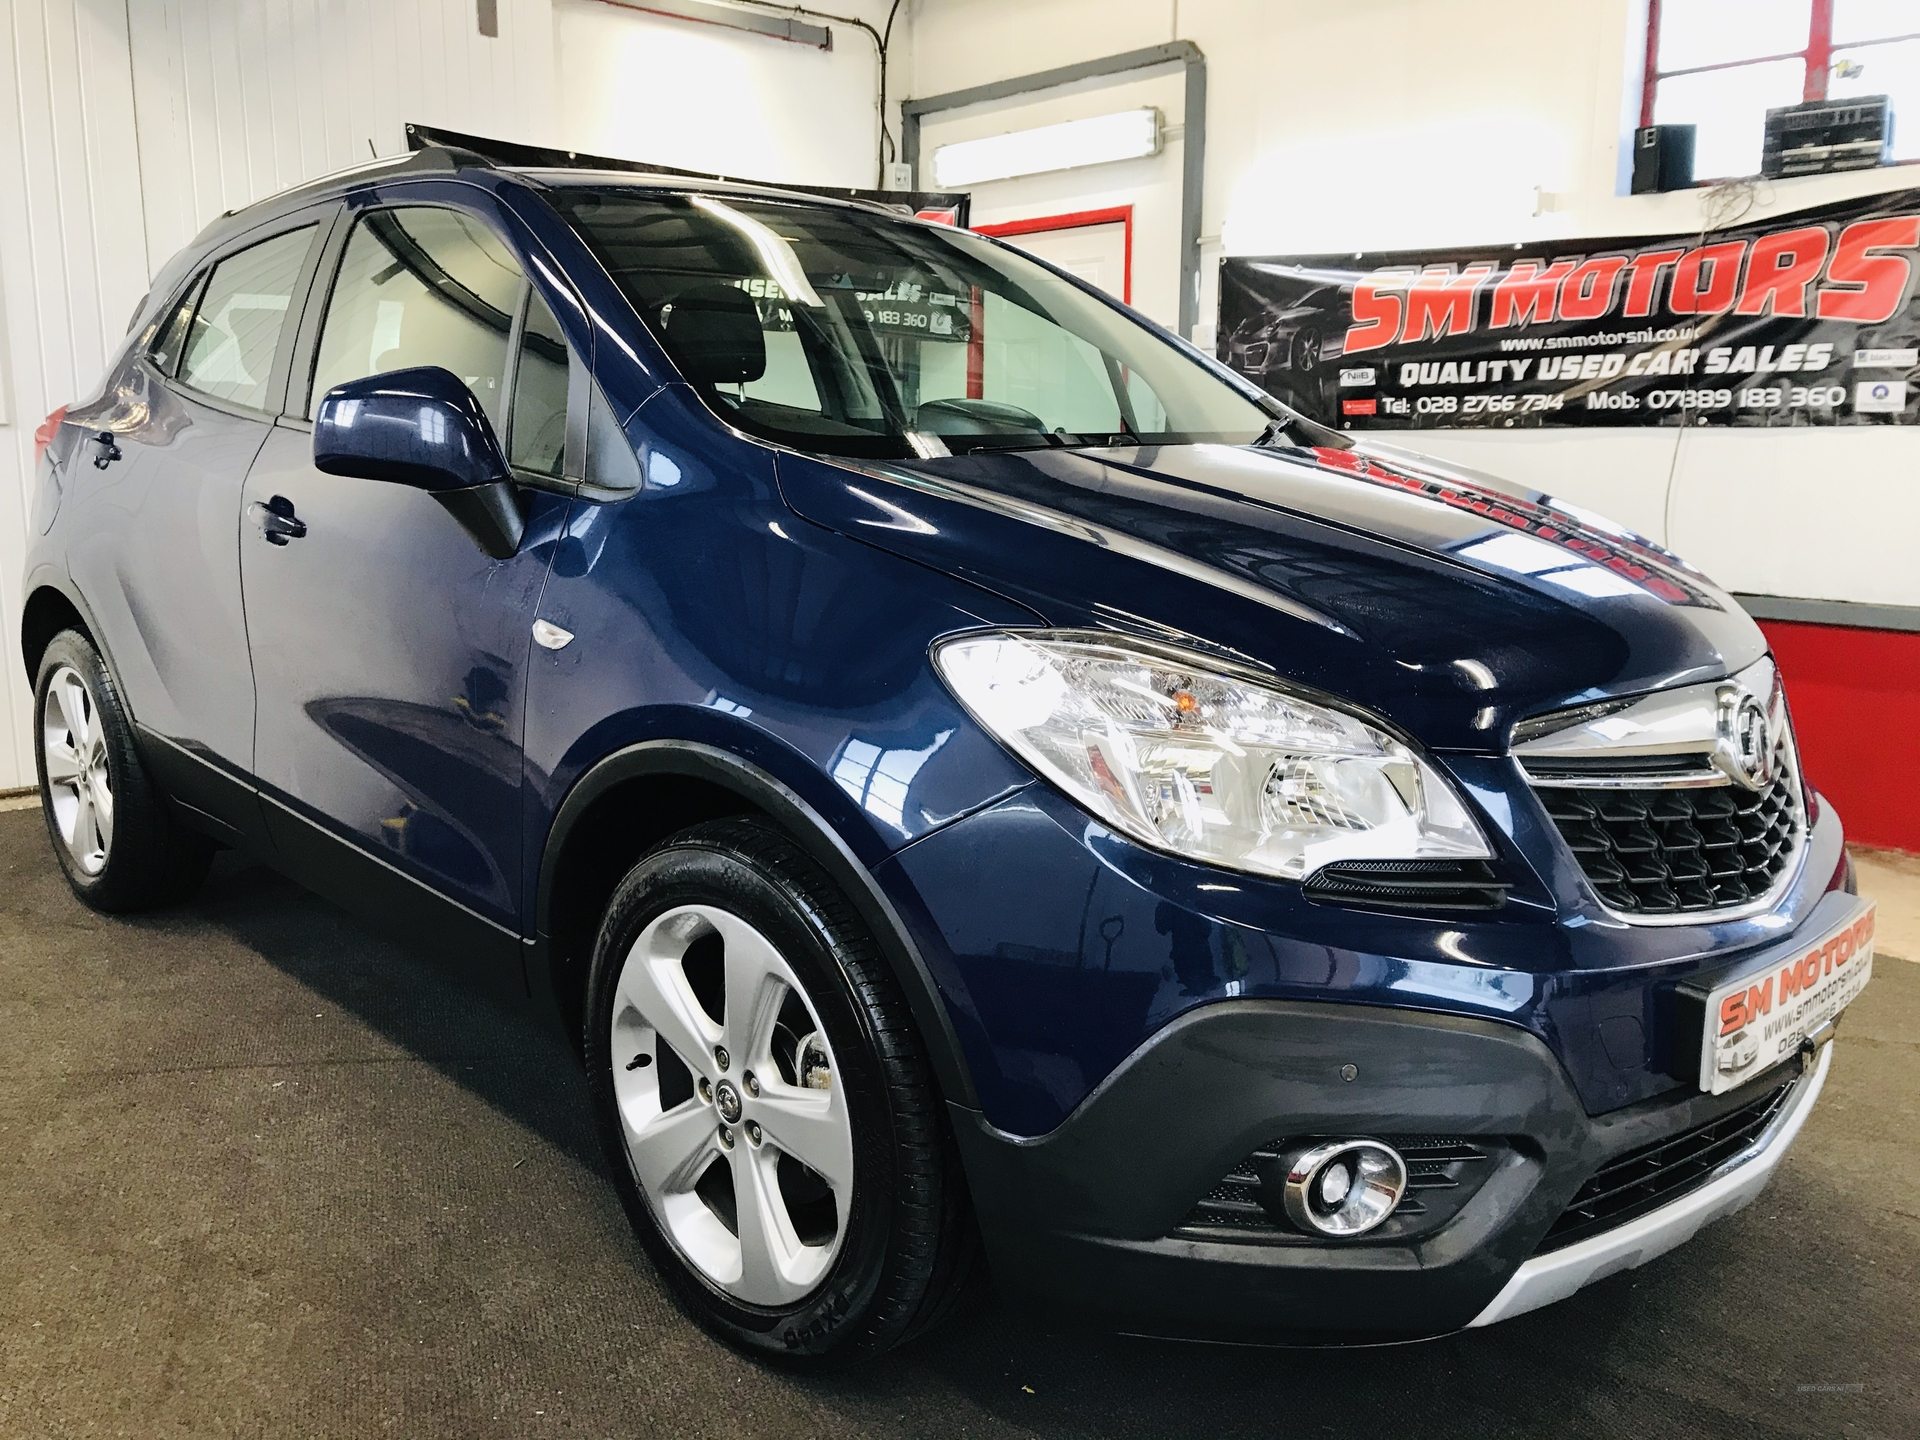 2014 Vauxhall Mokka 1.7  CDTi  Tech  Line  5dr Diesel Manual  – SM Motors Ballymoney